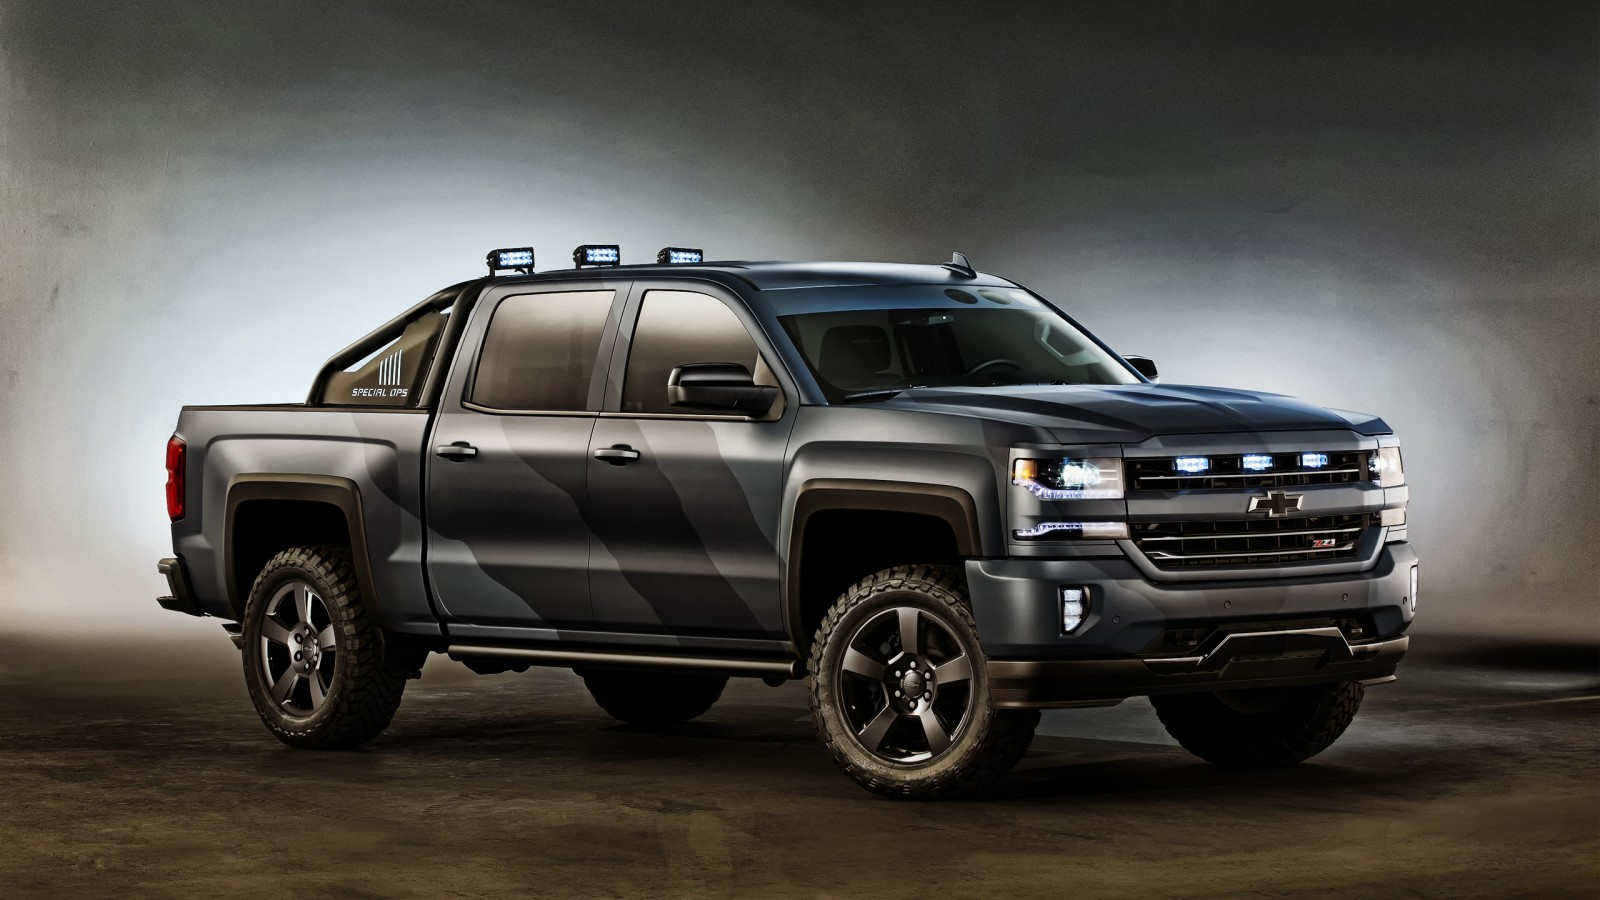 Lifted Truck Iphone Wallpaper 2015 Chevrolet Silverado Concept Wallpaper Hd Car